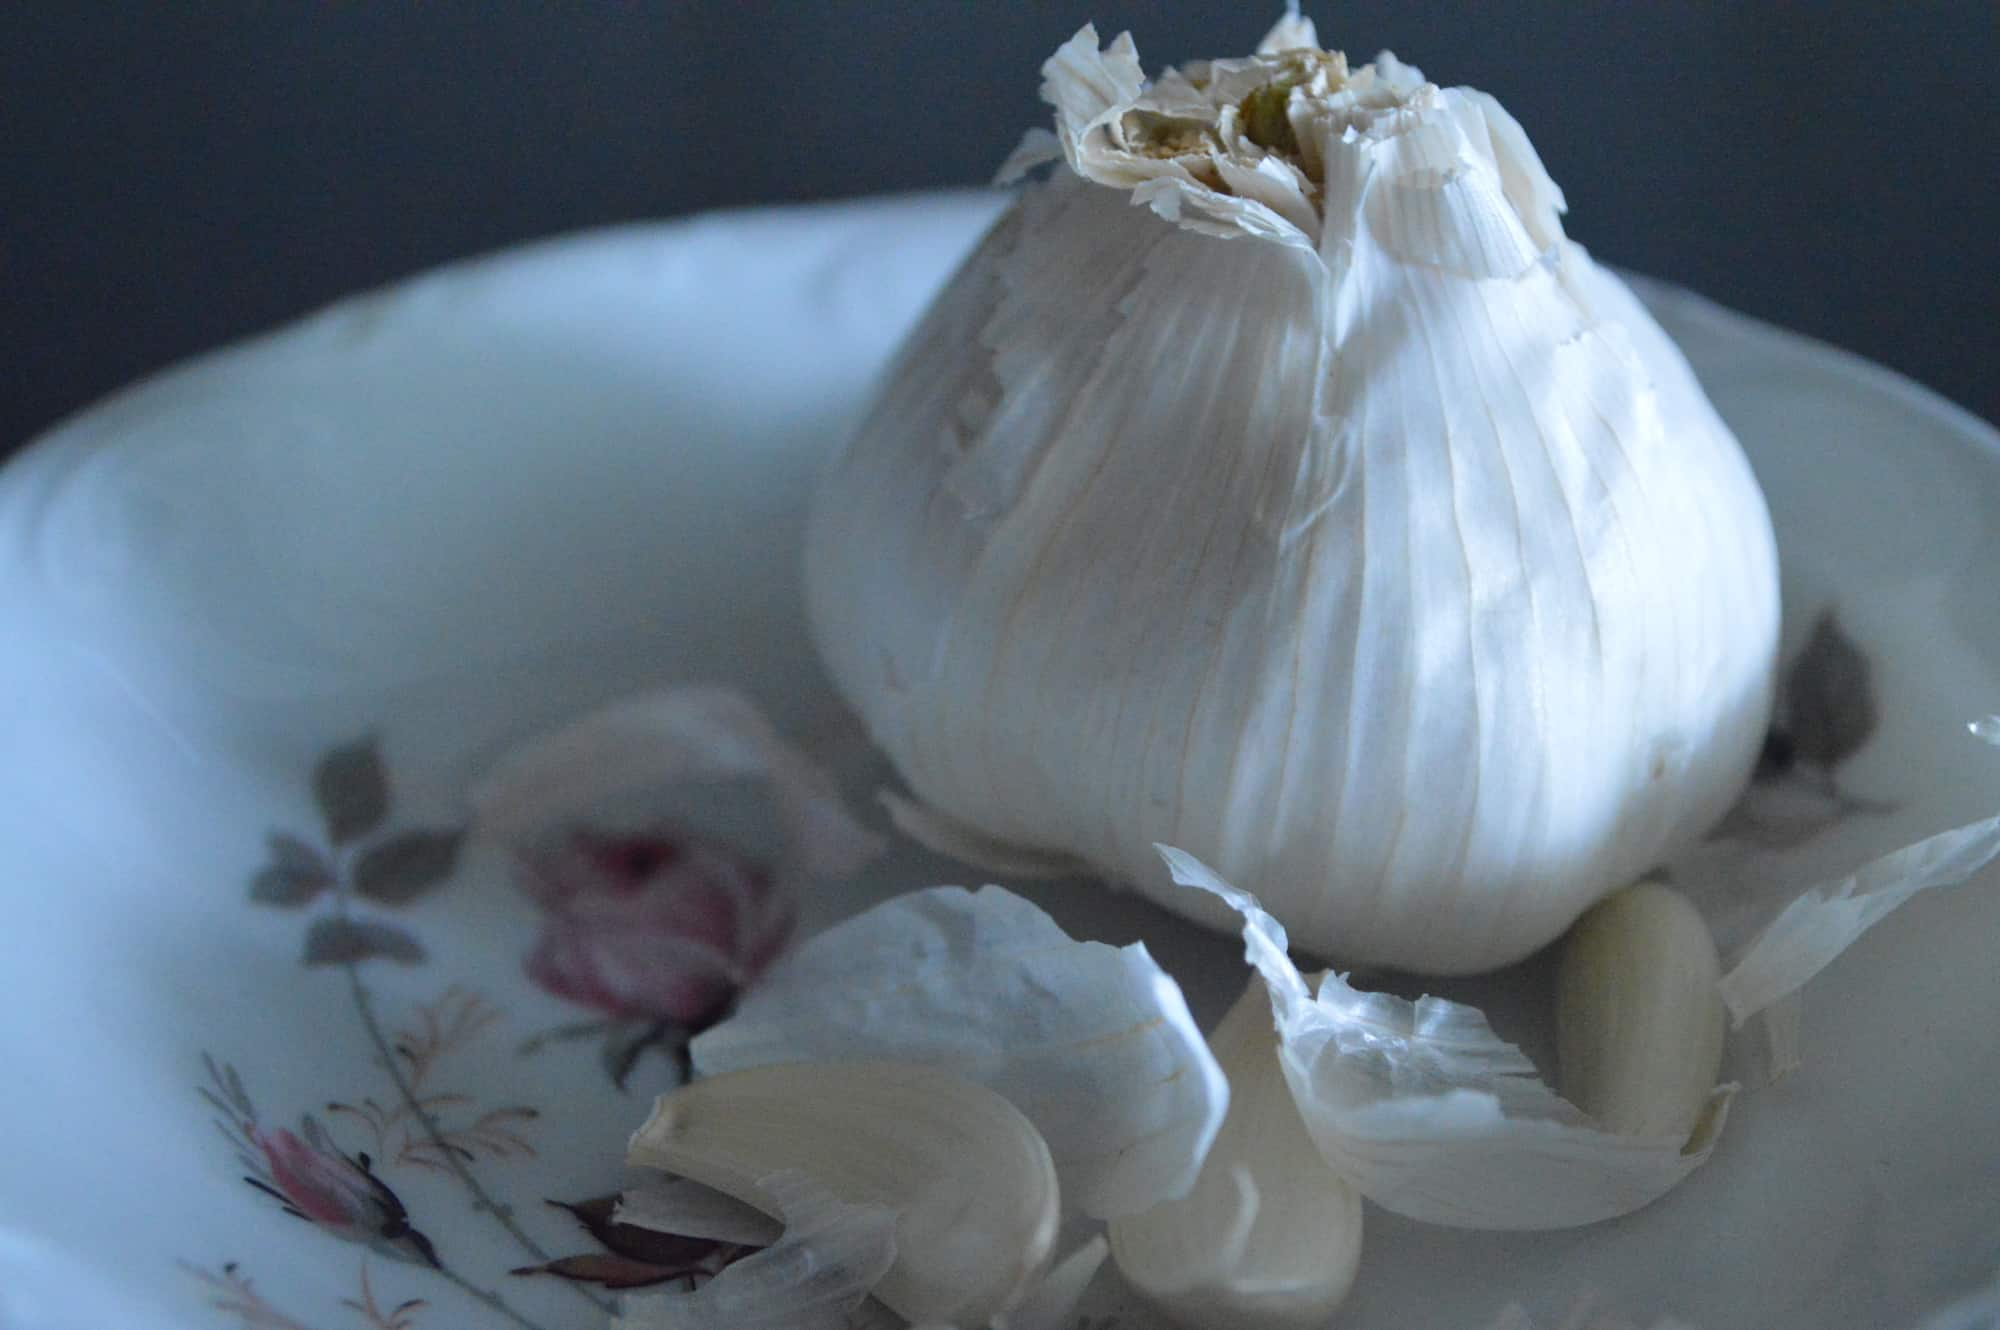 Garlic to boost immune systems